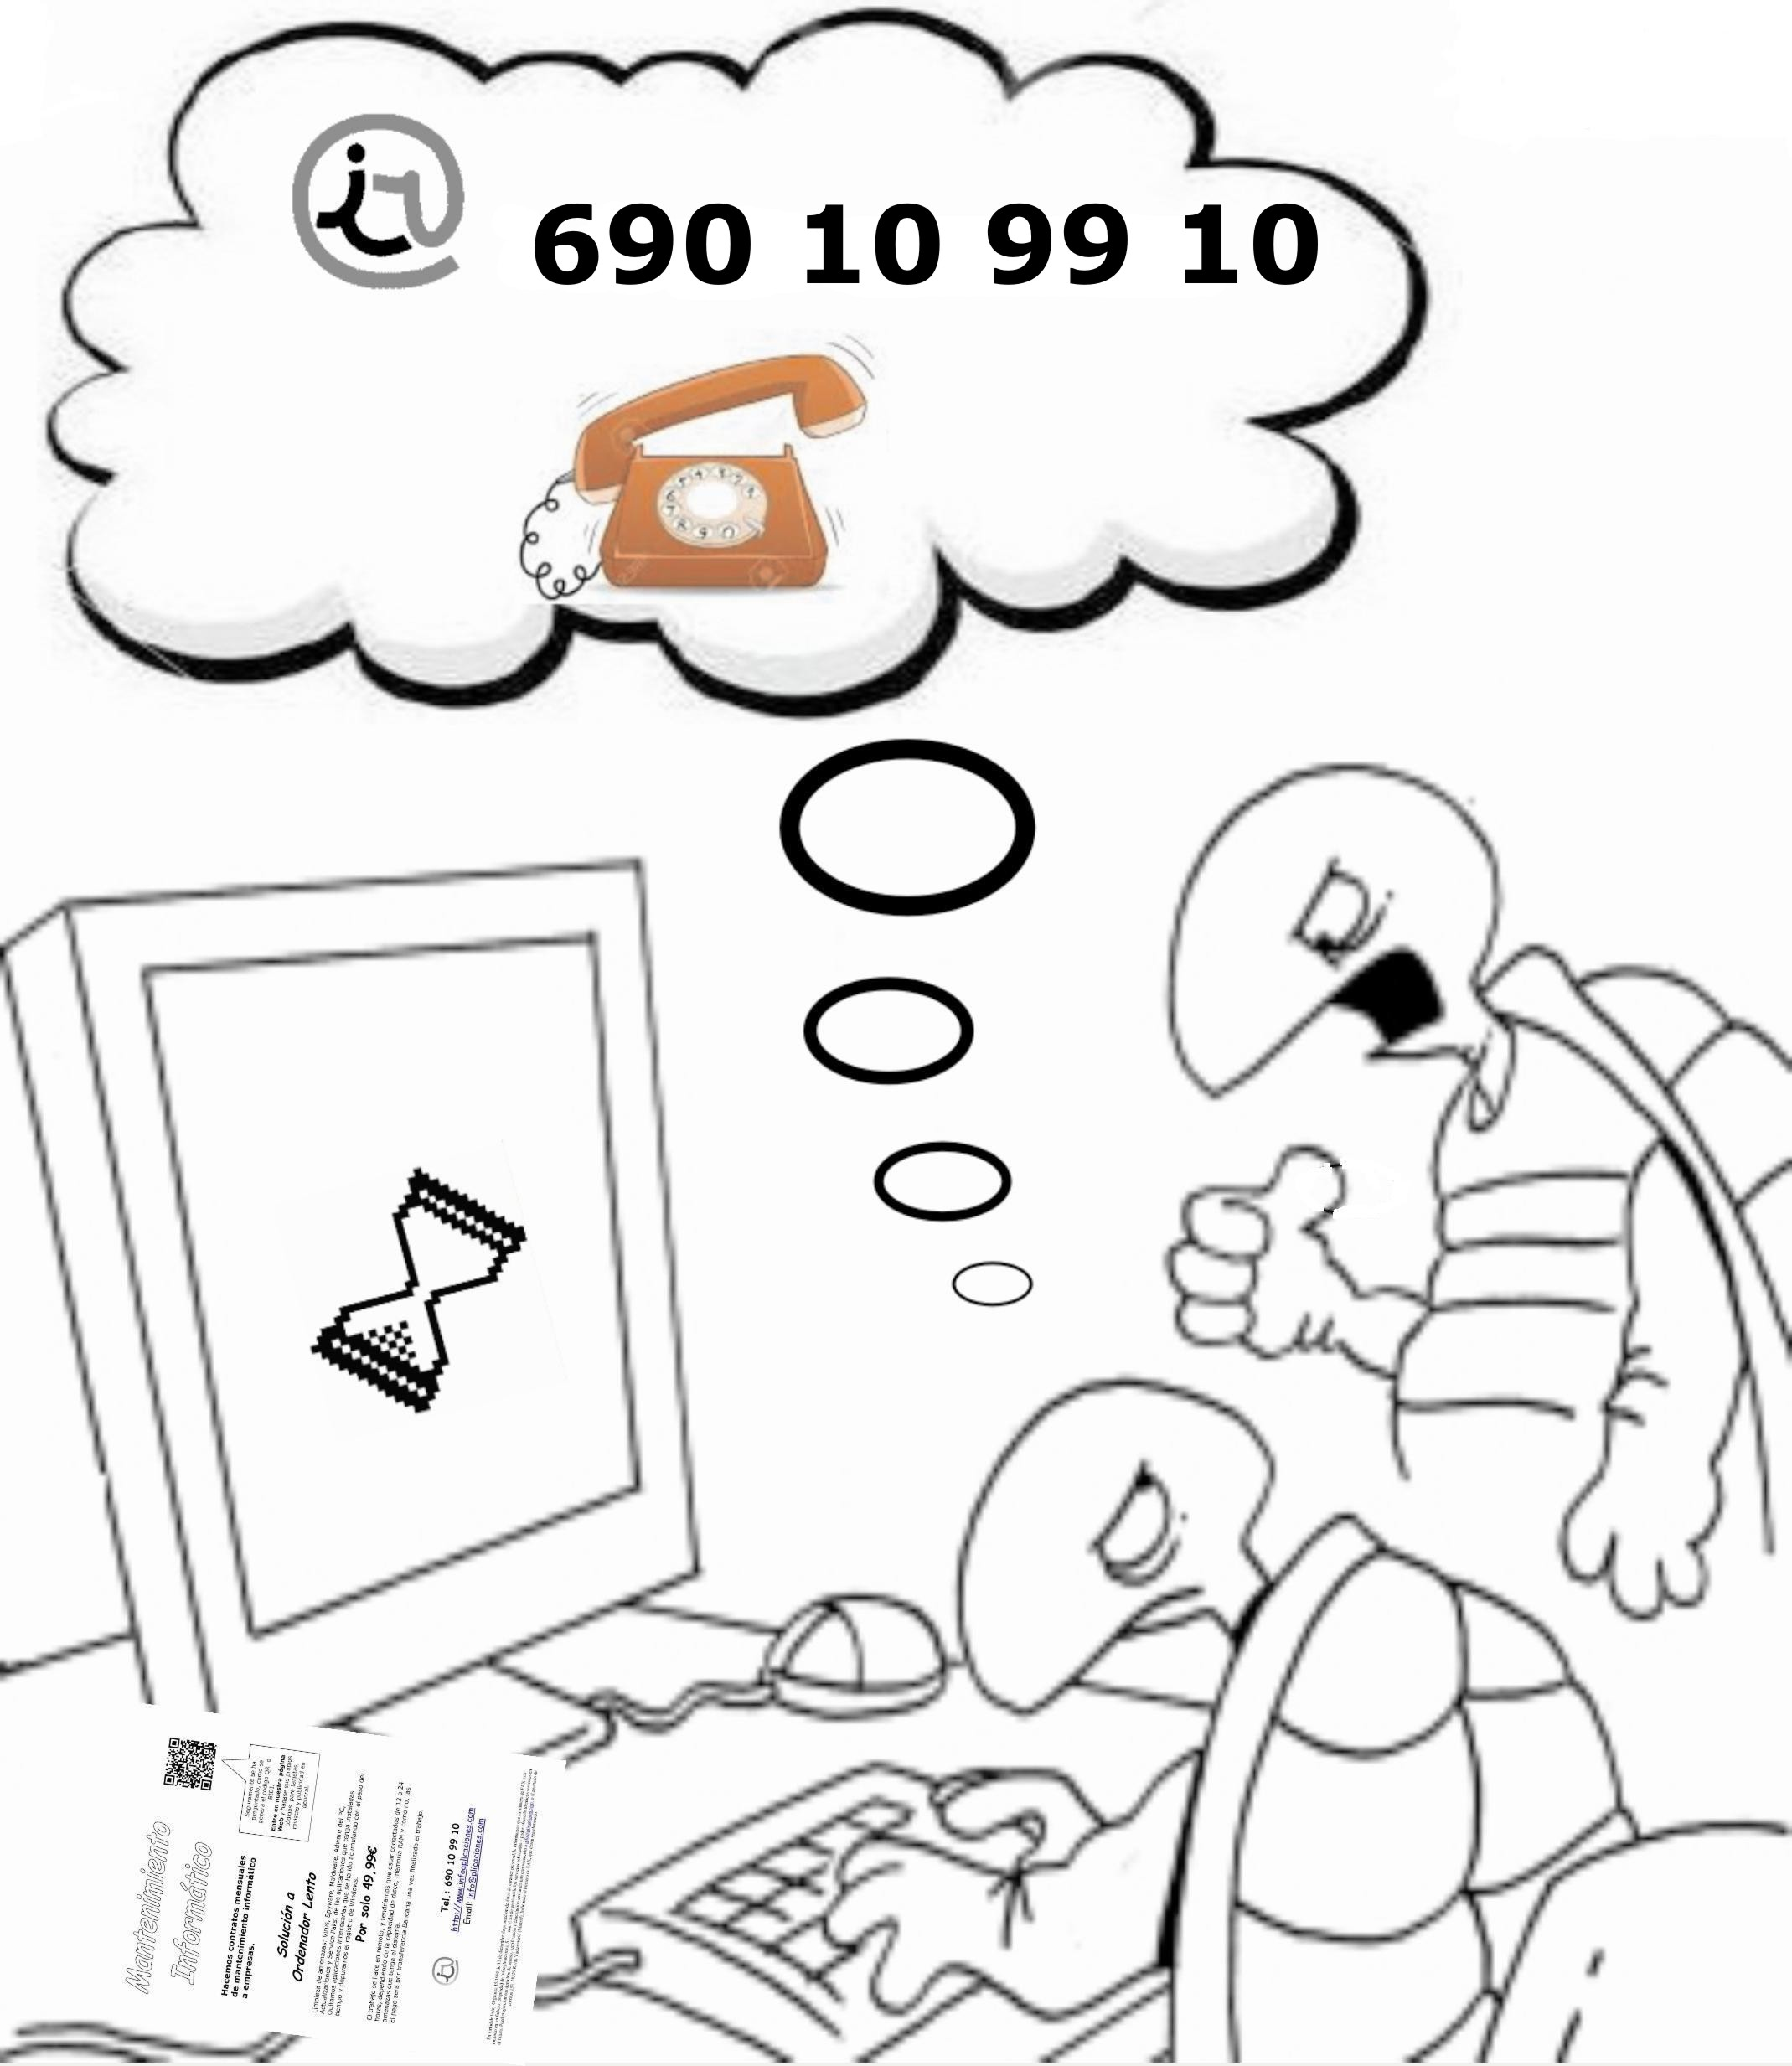 Reloj de arena reparar quitar-desactivar-virus-ordenador-lento-en-madrid-urbanizacion-galapark-teo-tui-barcelona-valencia-sevilla-zaragoza-arreglar-windows-xp-vista-7-8-10-acelerar-internet-optimizar-portatil-limpiar-pc  internet ordenador pc windows xp vista 7 8.1 10